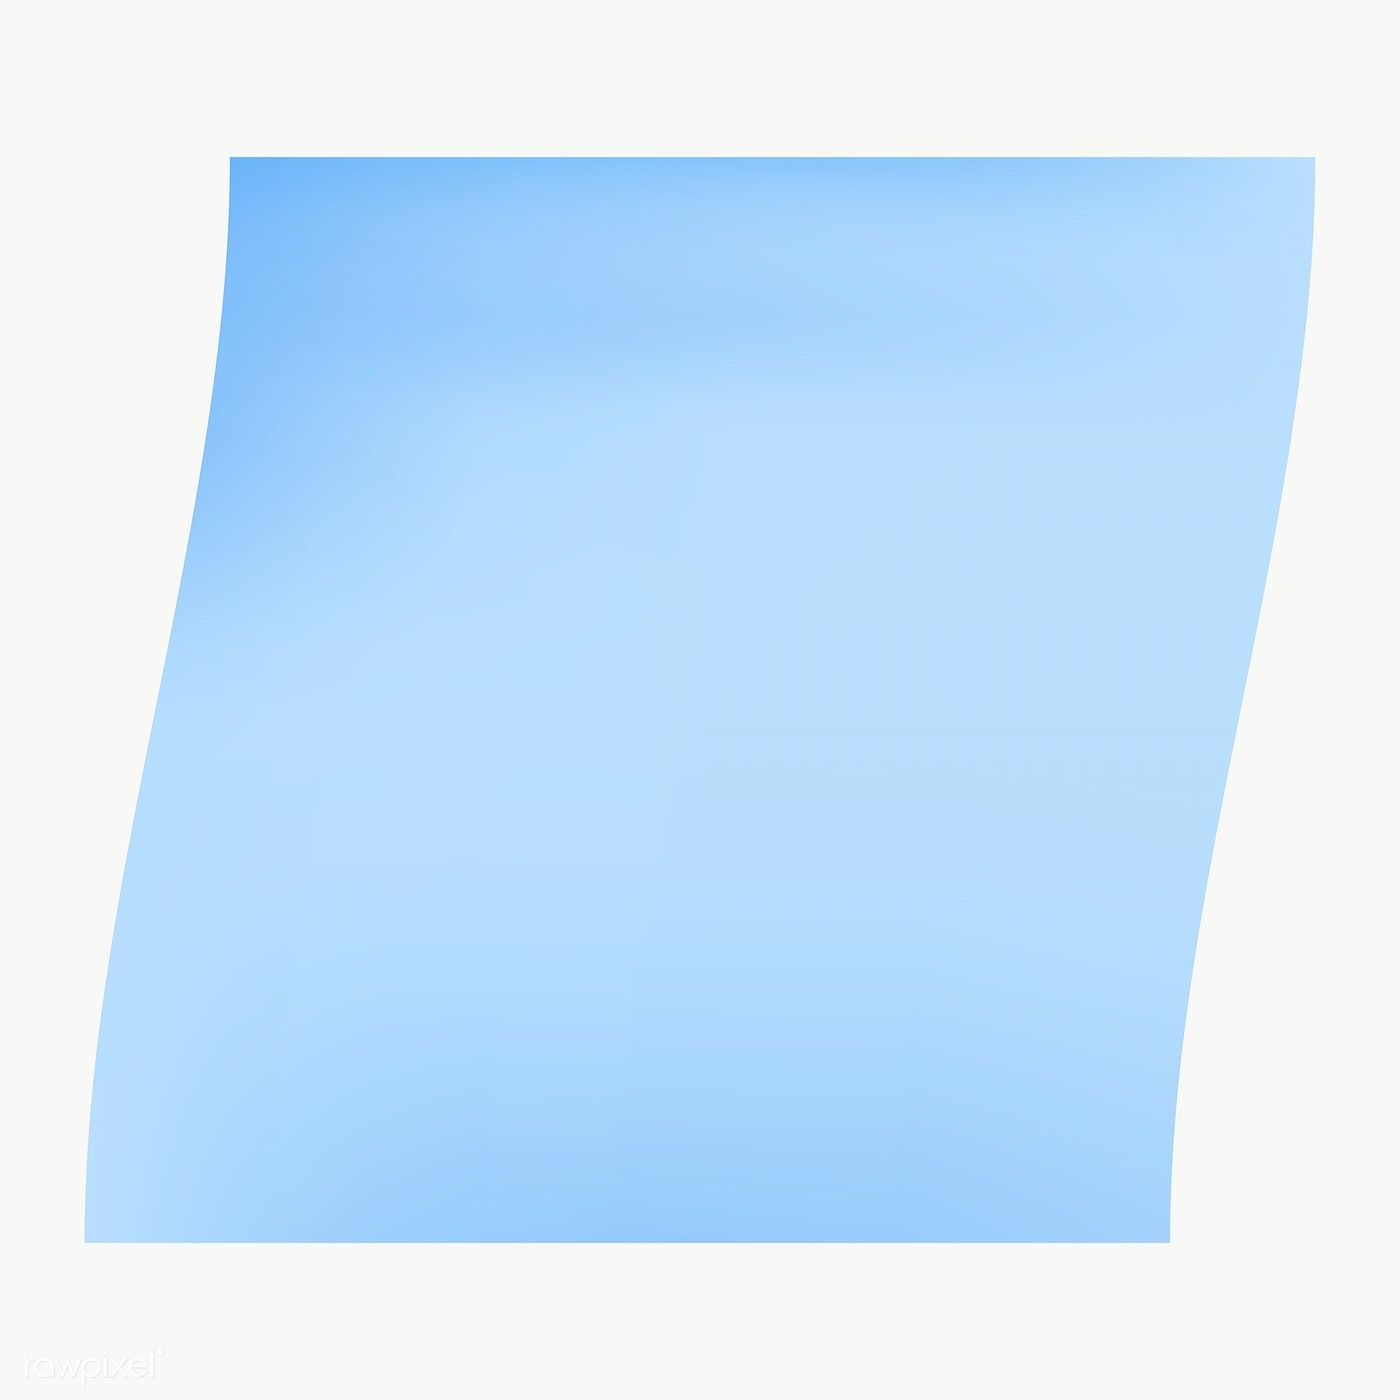 Blue Square Paper Note Social Ads Template Transparent Png Free Image By Rawpixel Com Manotang